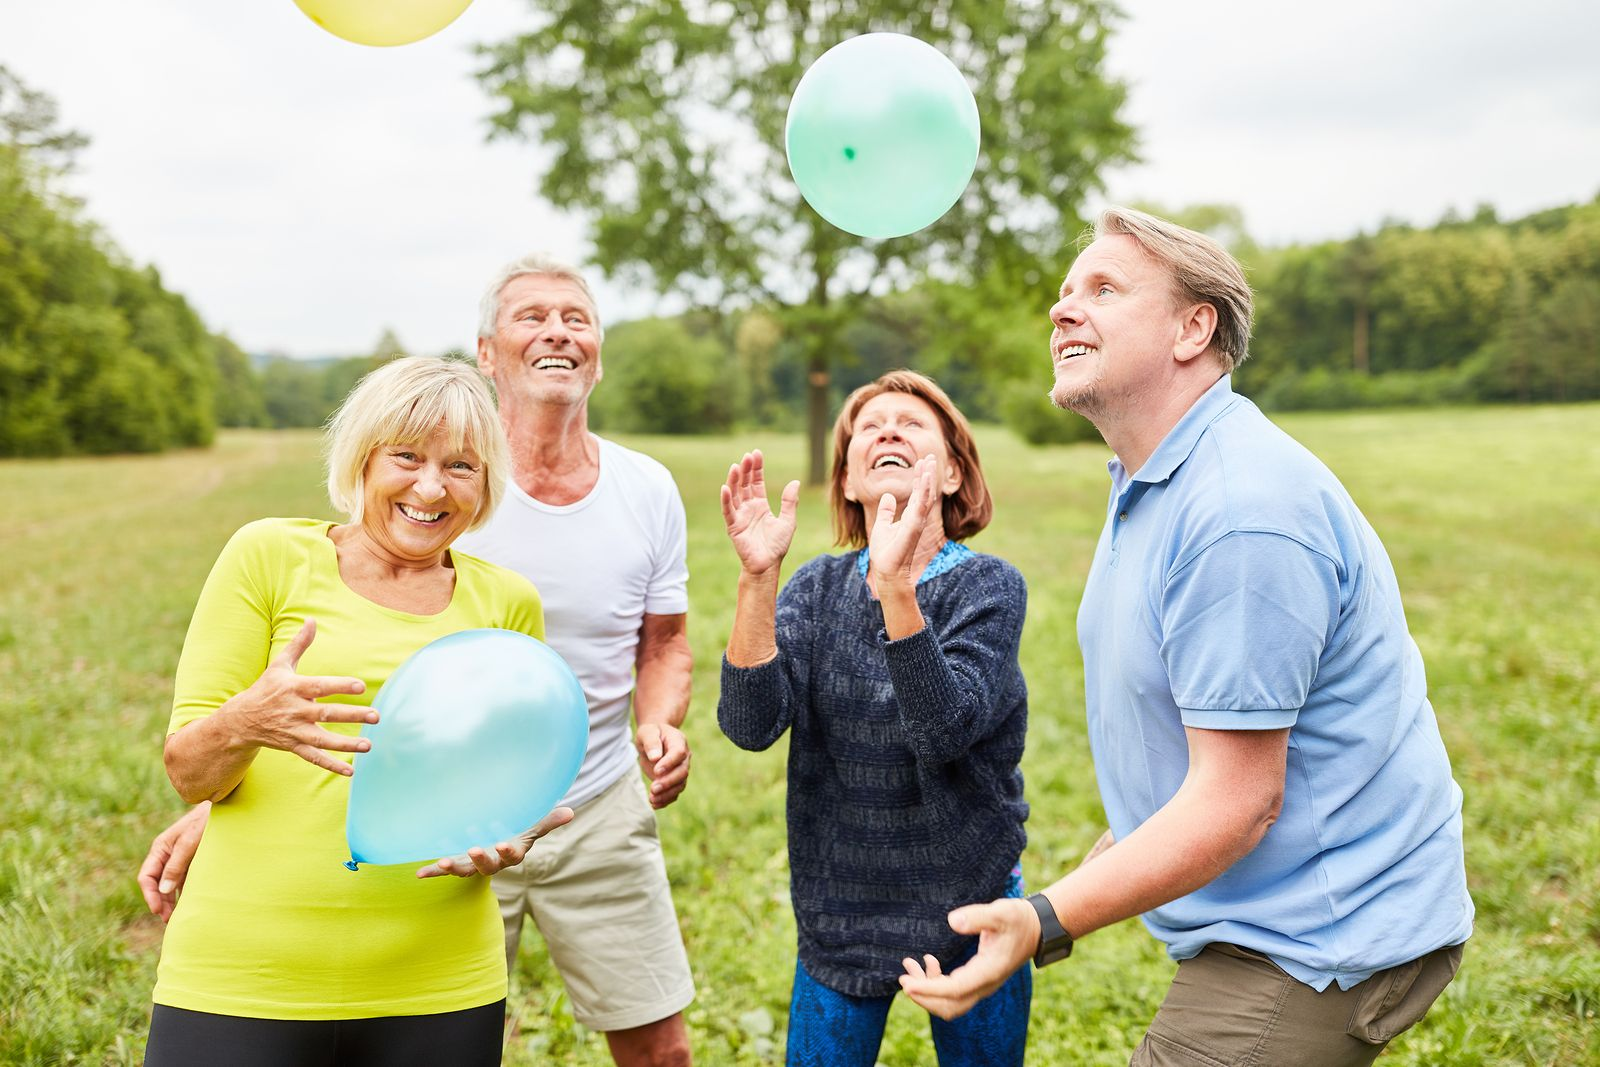 Group of seniors plays with balloons at a party in the park